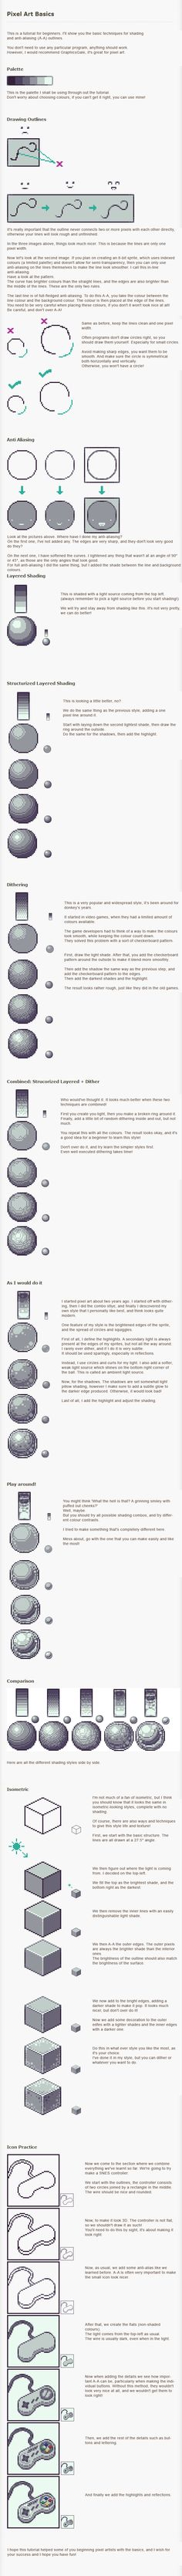 Pixel Art Tutorial - Basics by *Kiwinuptuo on deviantART